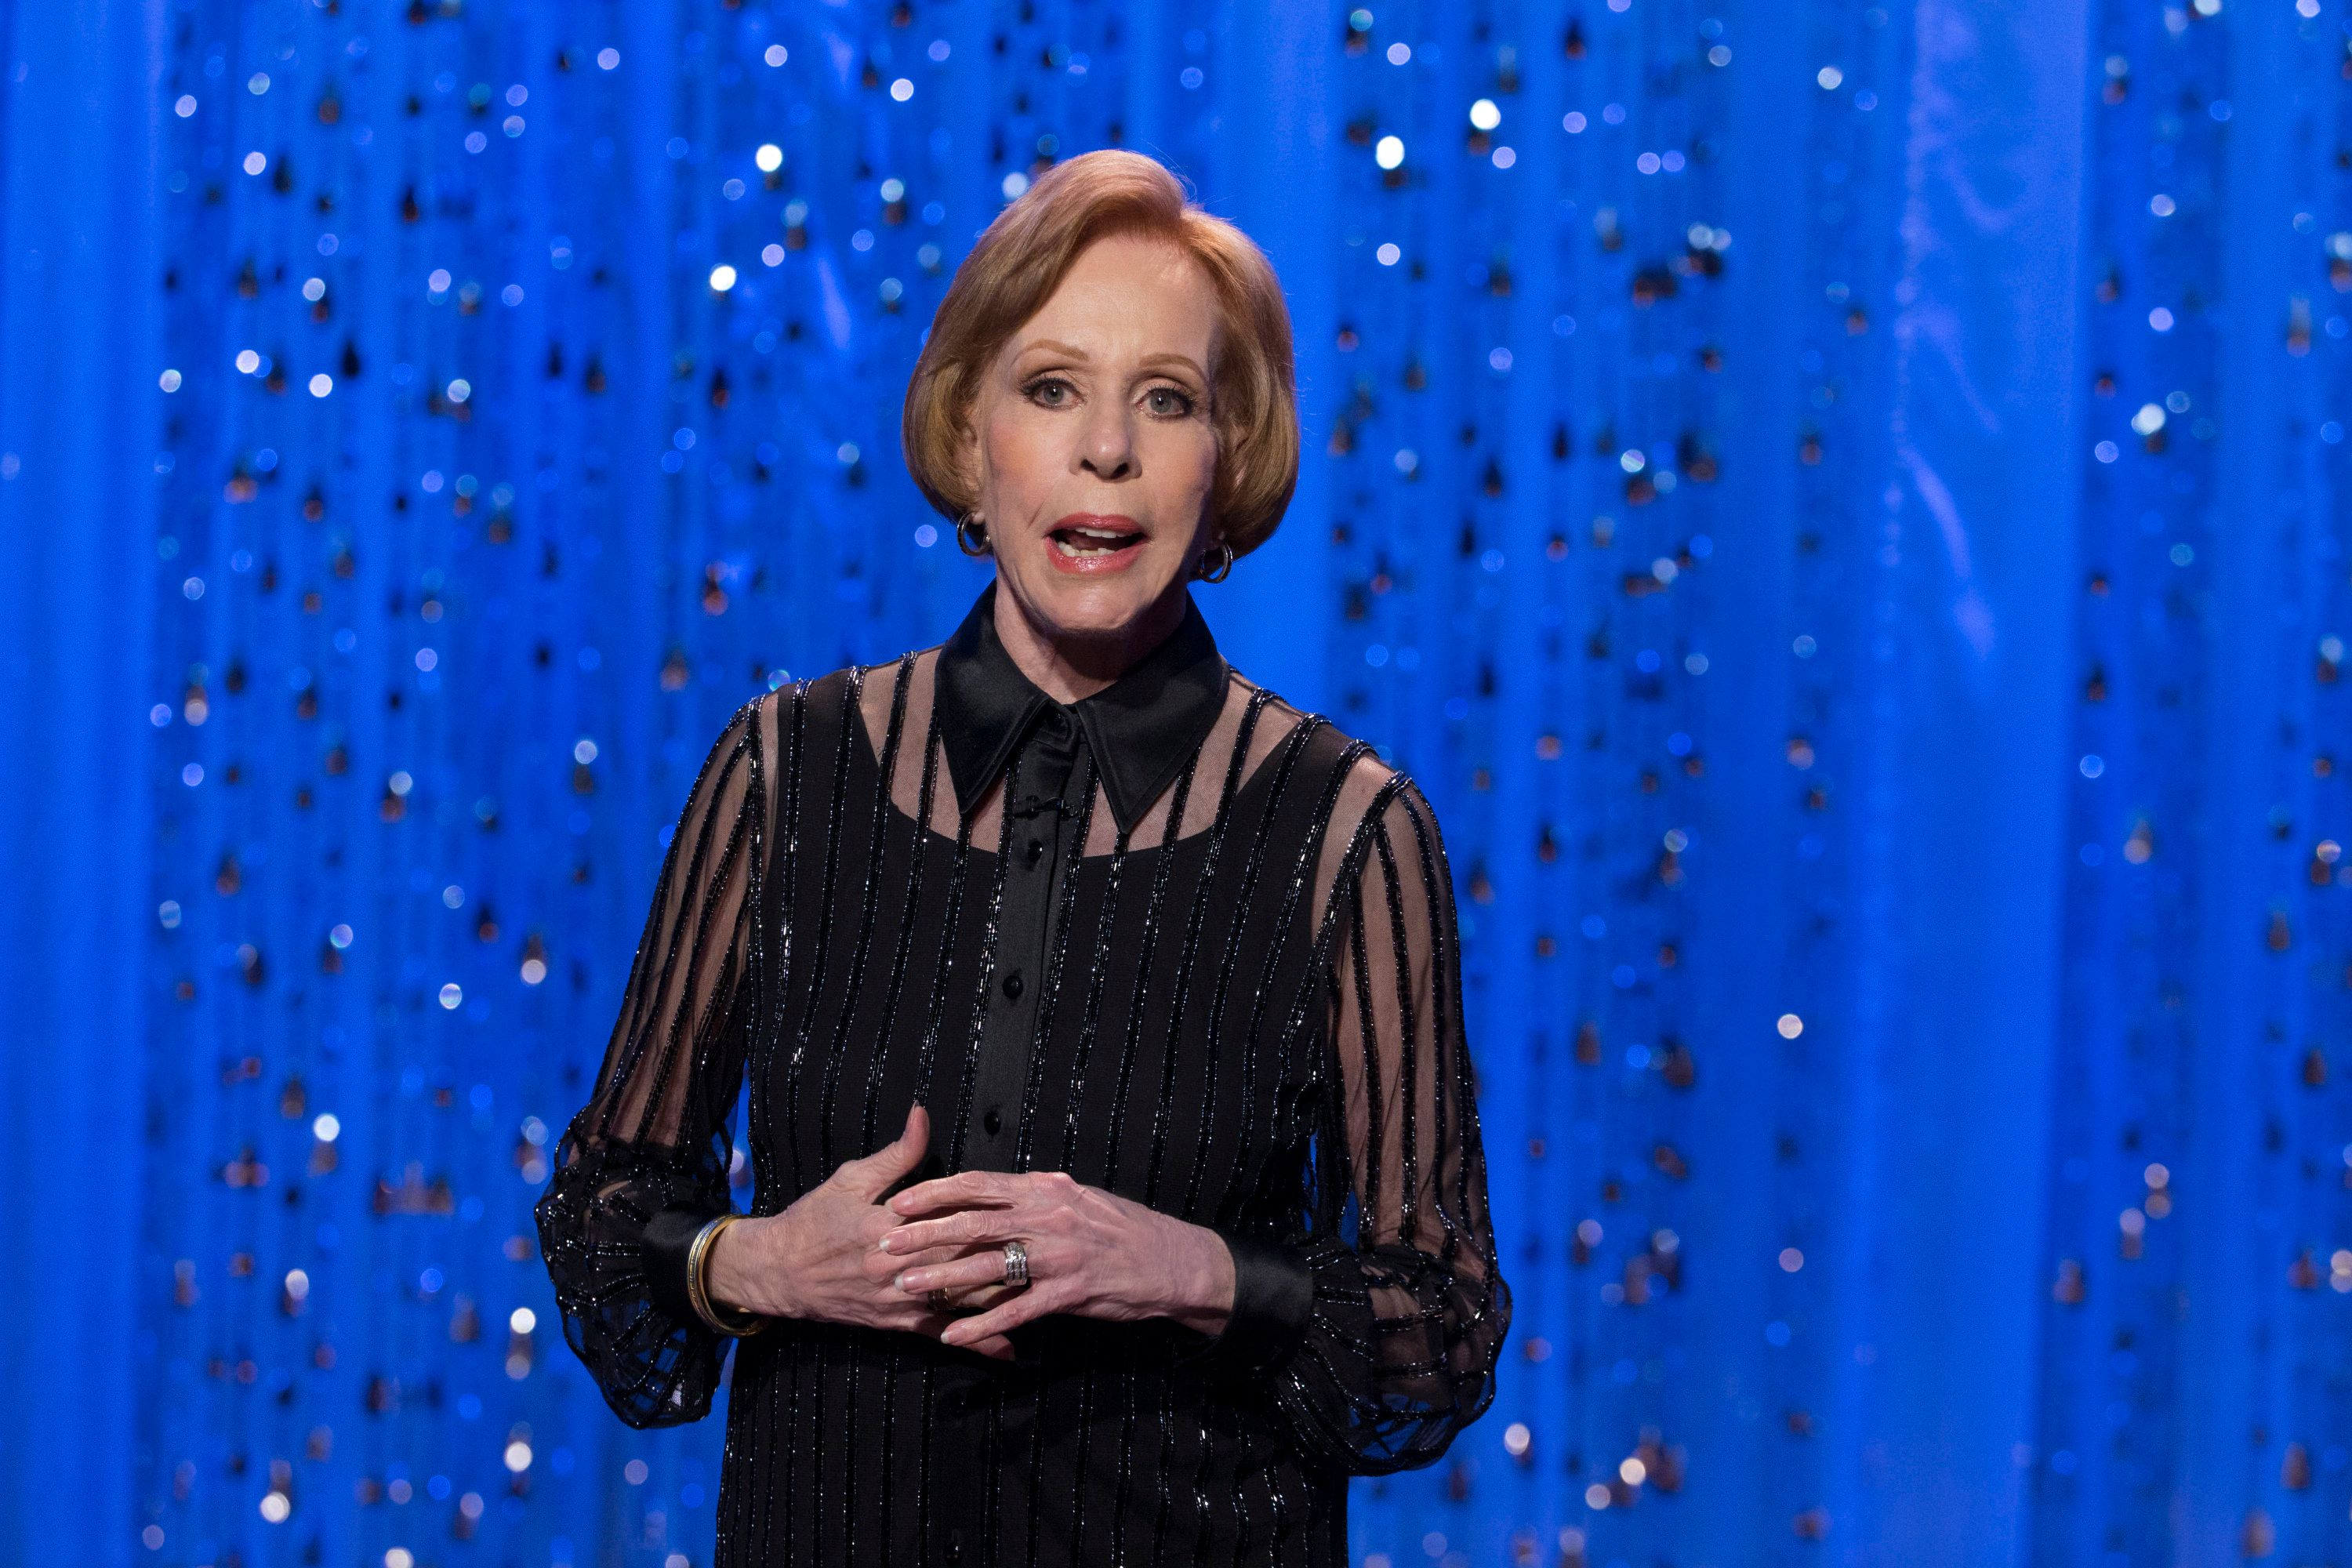 Carol Burnett on stage during a CBS special celebrating the 50th anniversary of her variety show